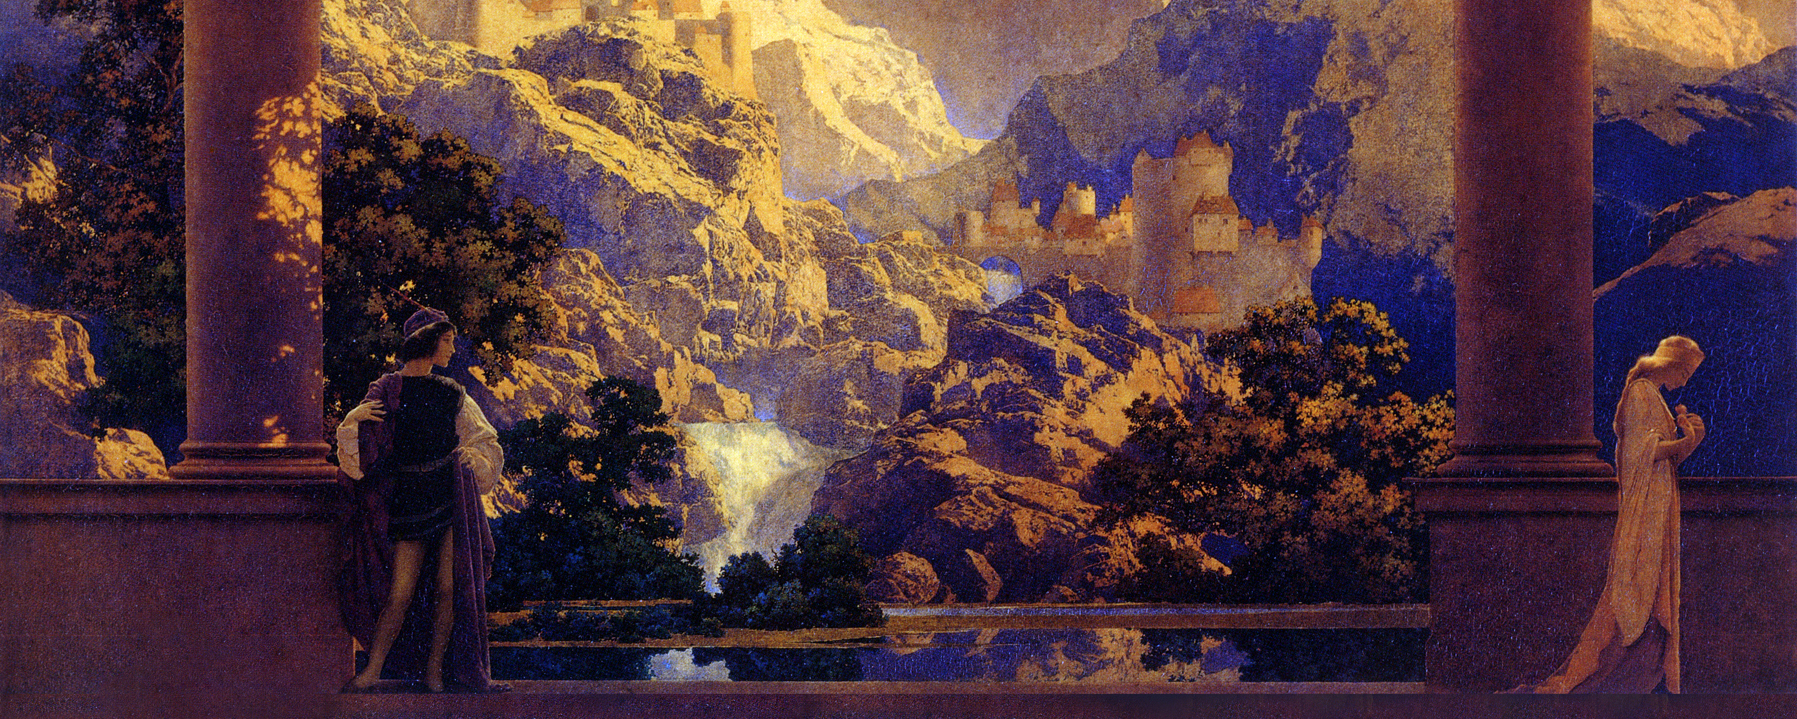 Maxfield Parrish - Romance